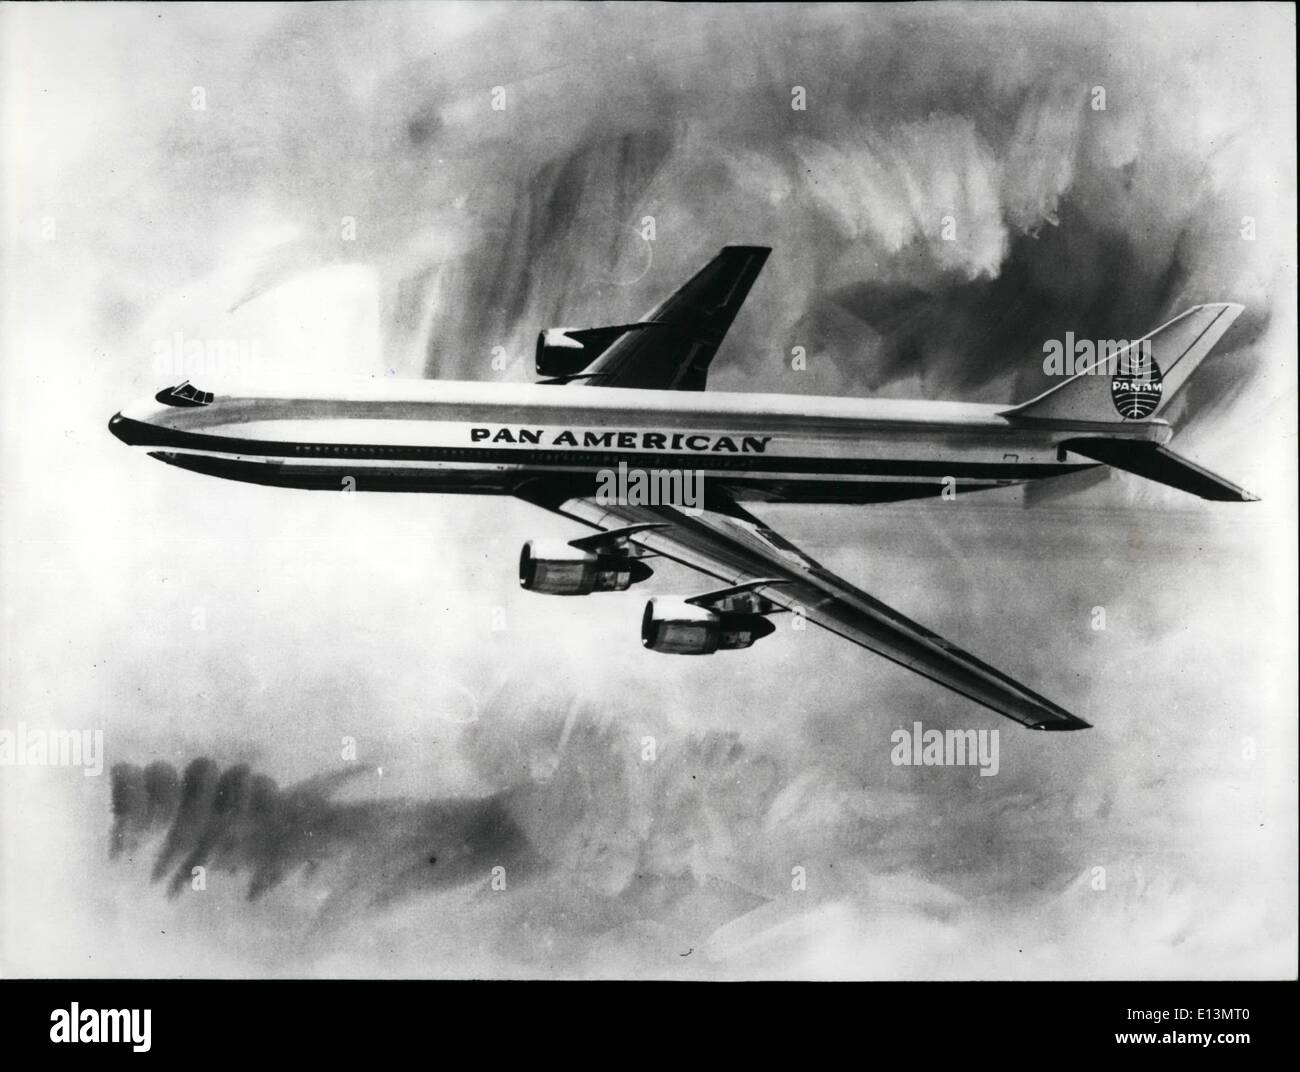 Mar. 22, 2012 - Artist's Impression Of The New Giant Airliner - Stock Image